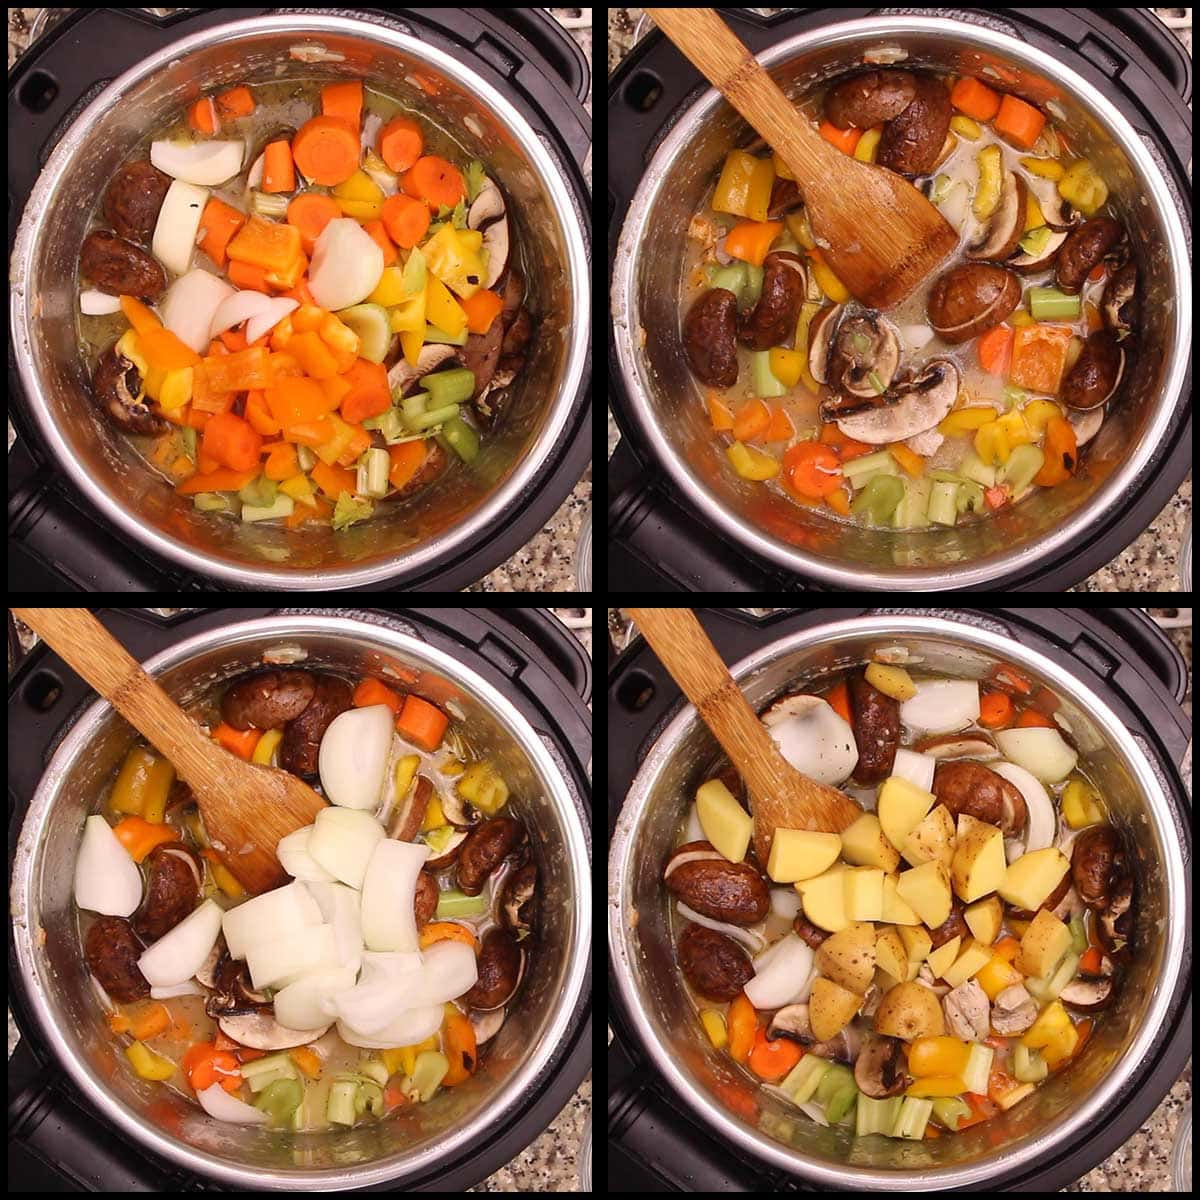 adding vegetables and potatoes to chicken stew